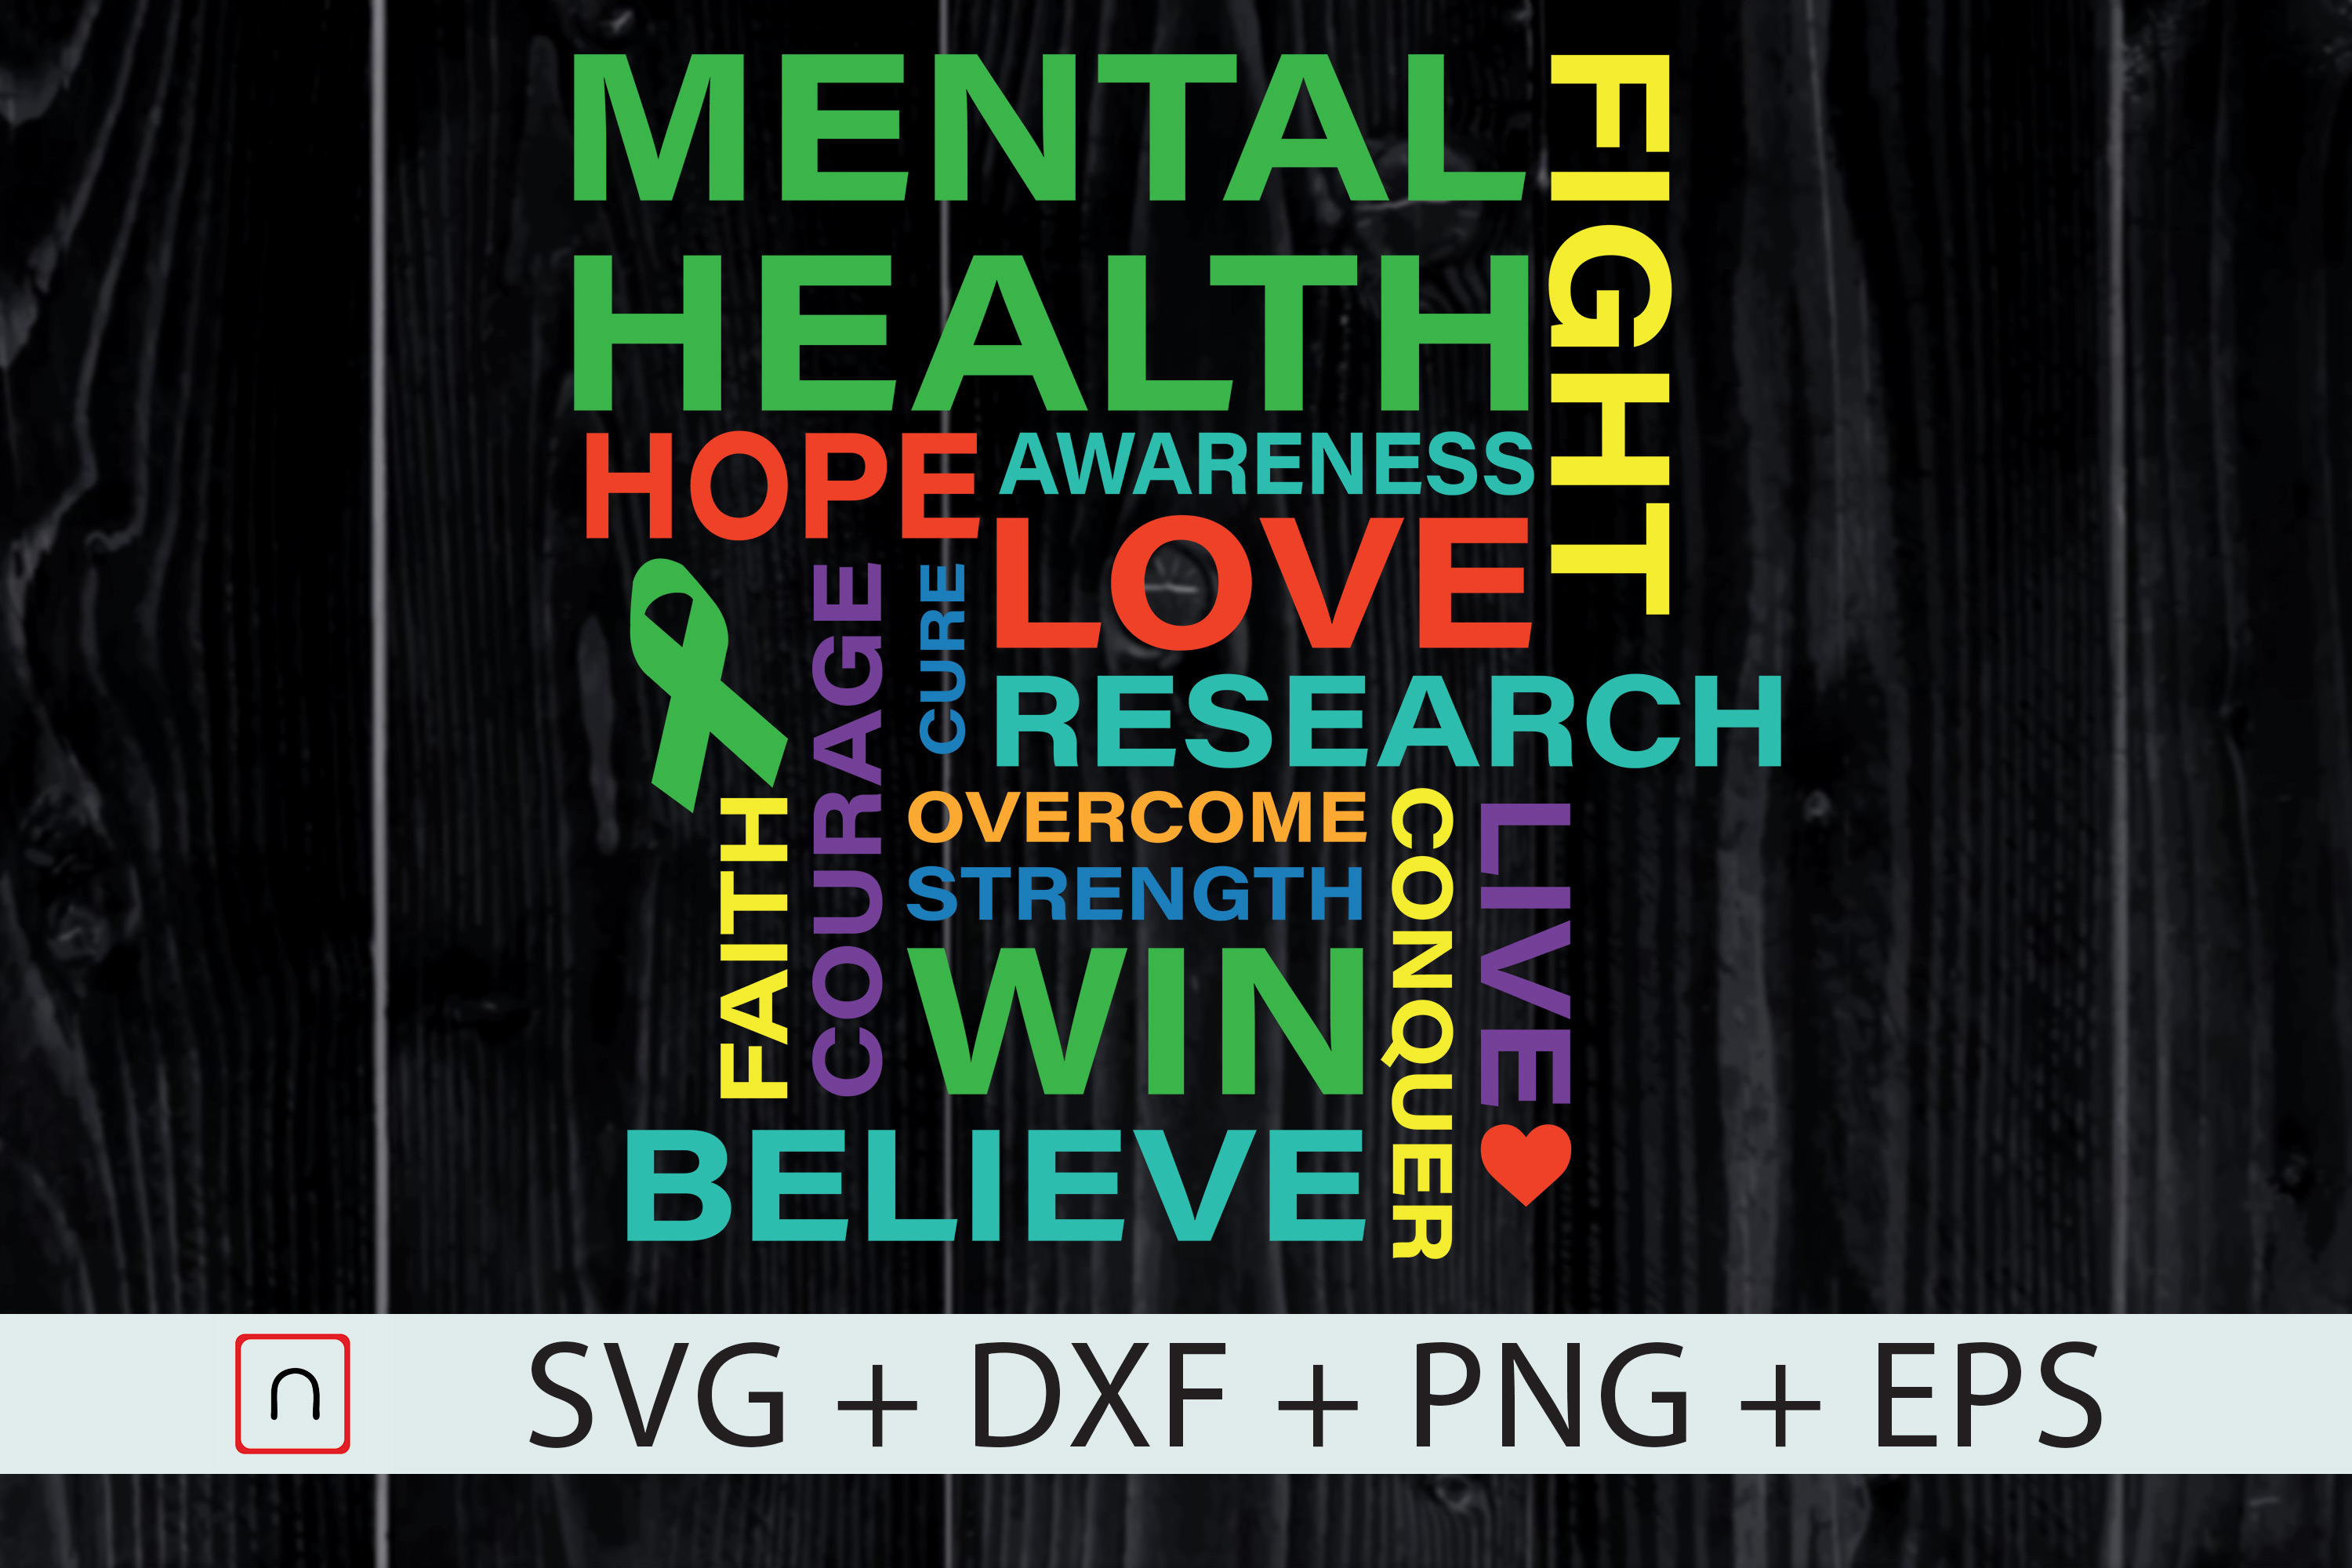 Download Free Mental Health Awareness Month Shirt Graphic By Novalia for Cricut Explore, Silhouette and other cutting machines.